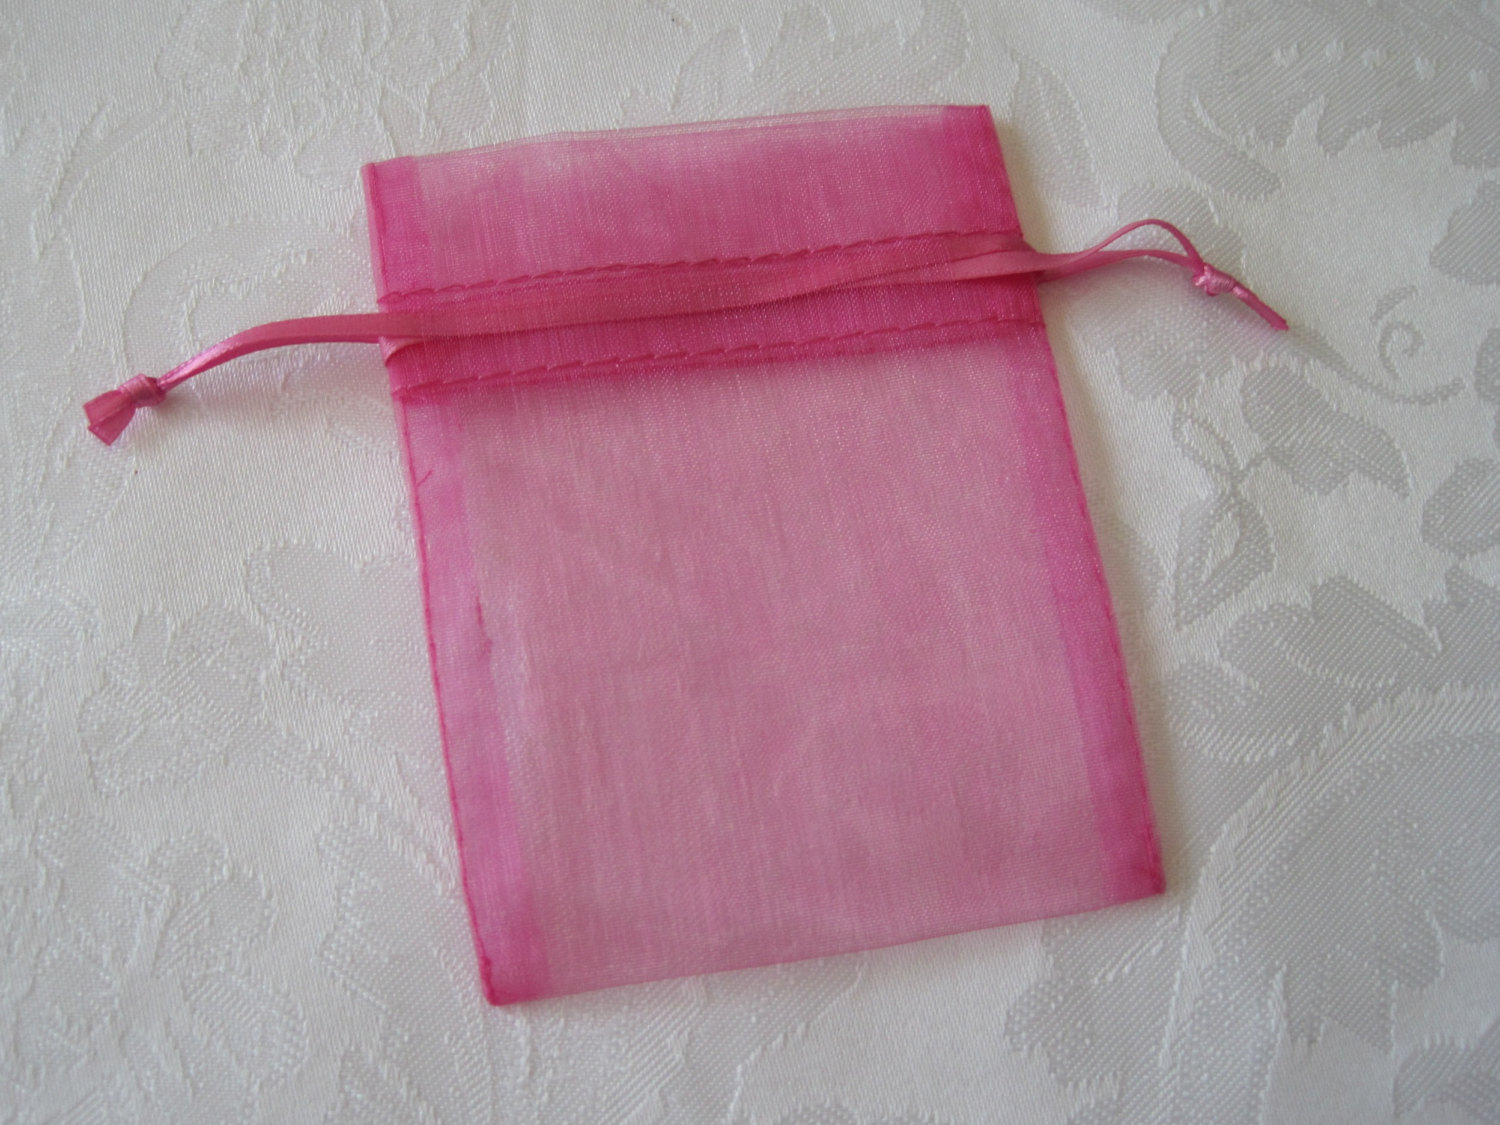 Pink organza jewelry bridesmaid gift drawstring pouch bags